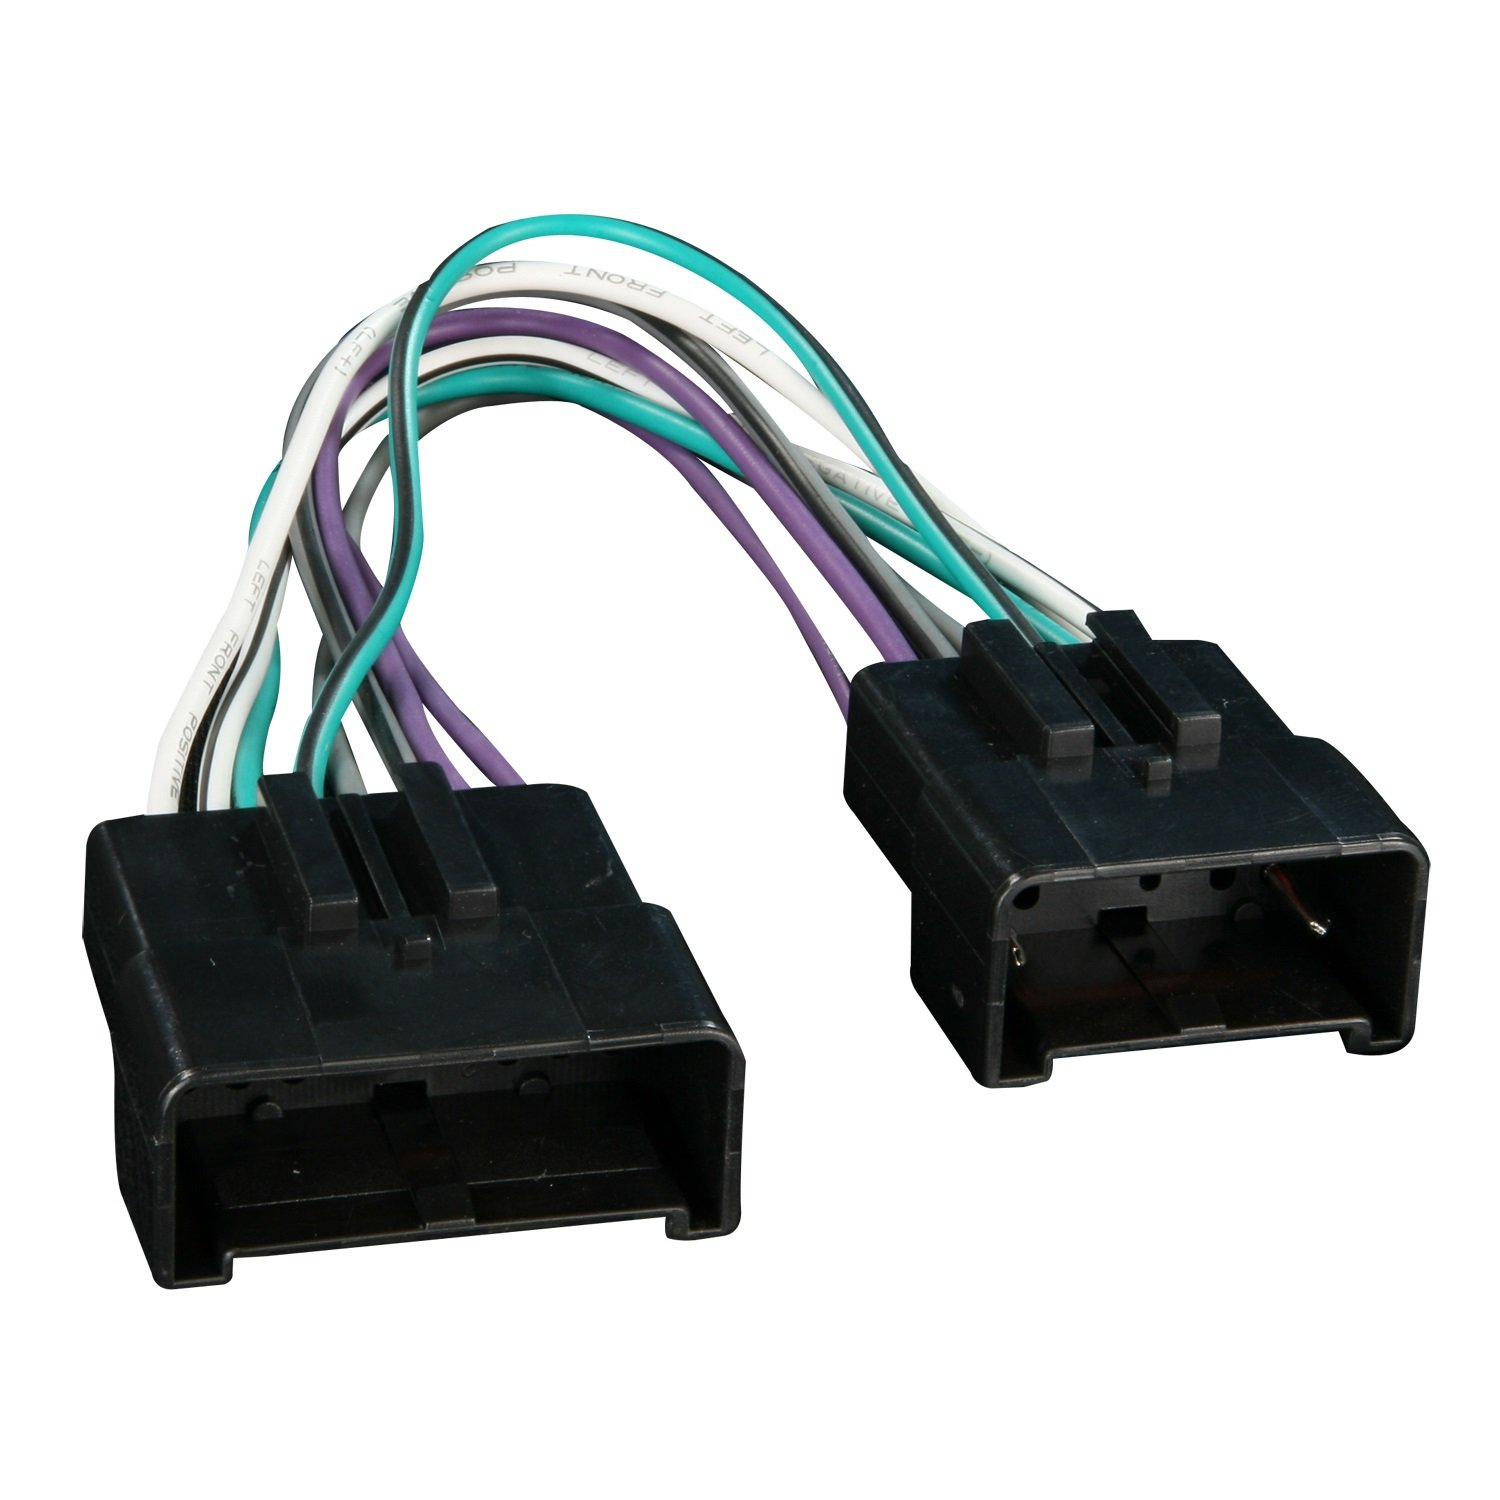 71pSHbvTl0L._SL1500_ amazon com metra 70 5513 radio wiring harness for ford amplifier Metra Wiring Harness Diagram at bayanpartner.co